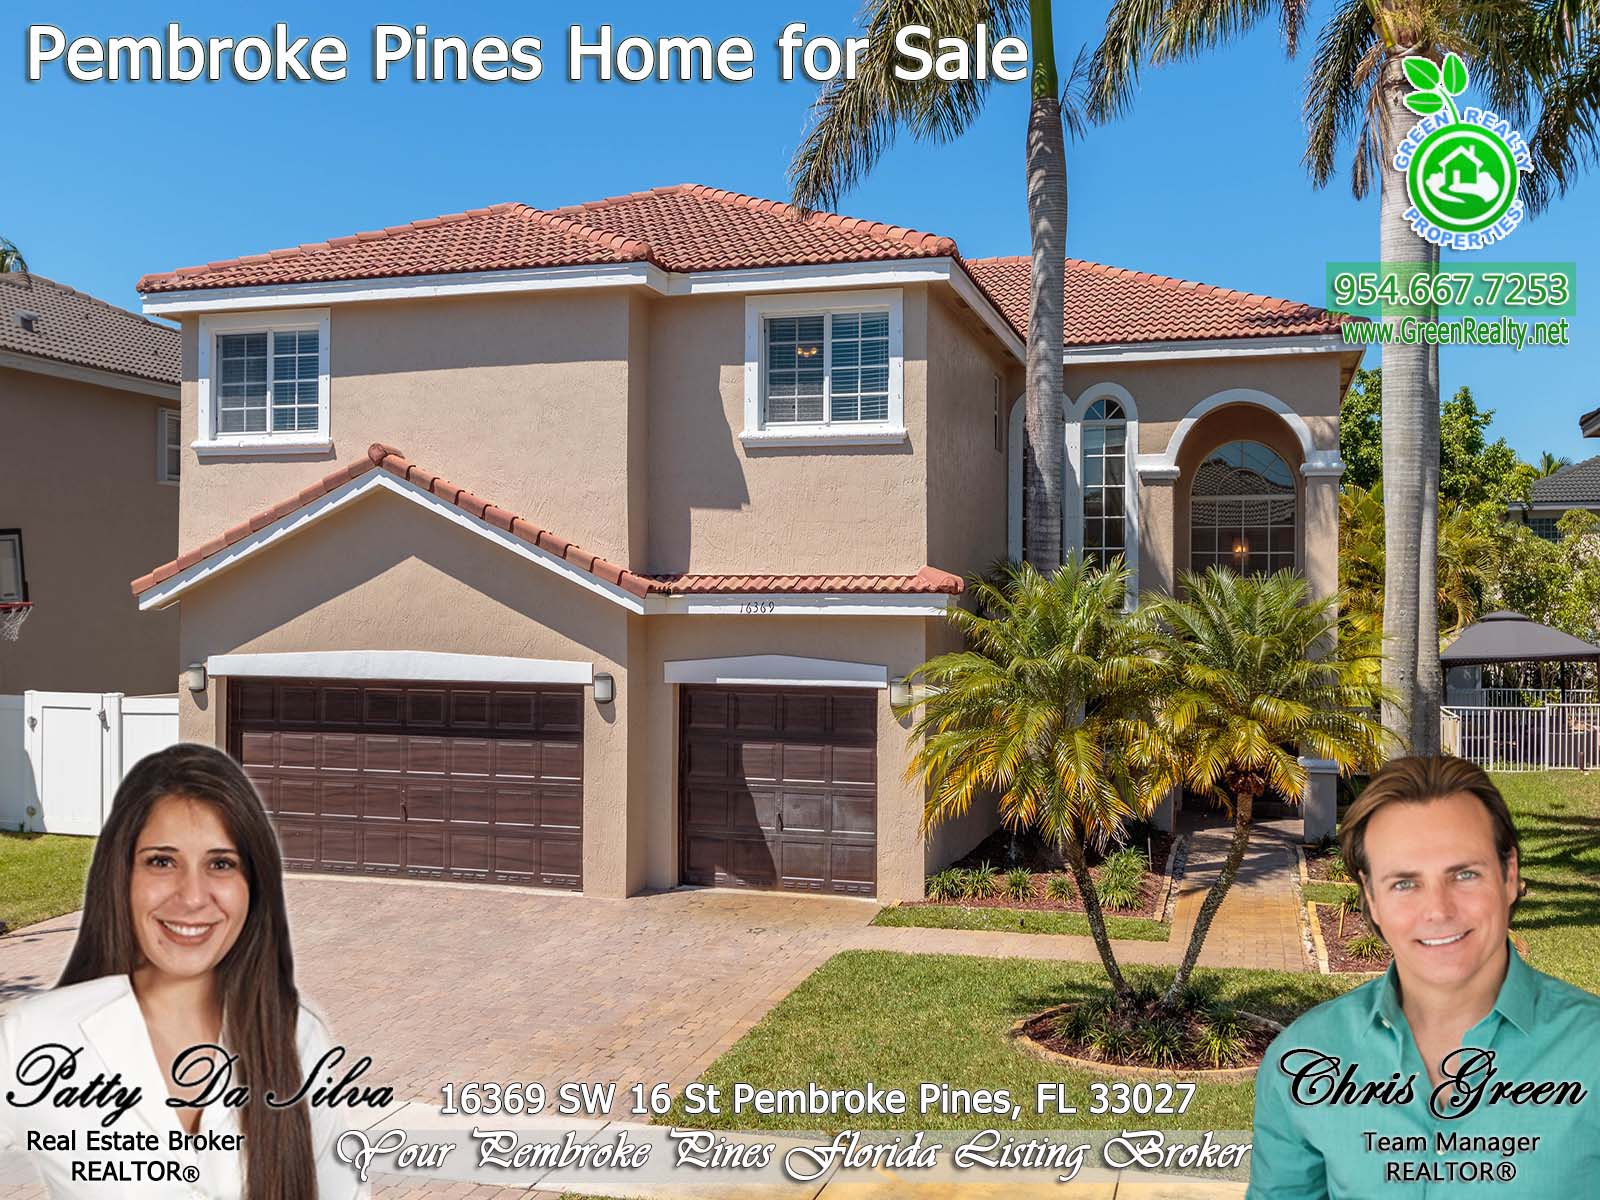 25 Pembroke Pines Realtor Broker Patty Da Silva south florida listing (2)